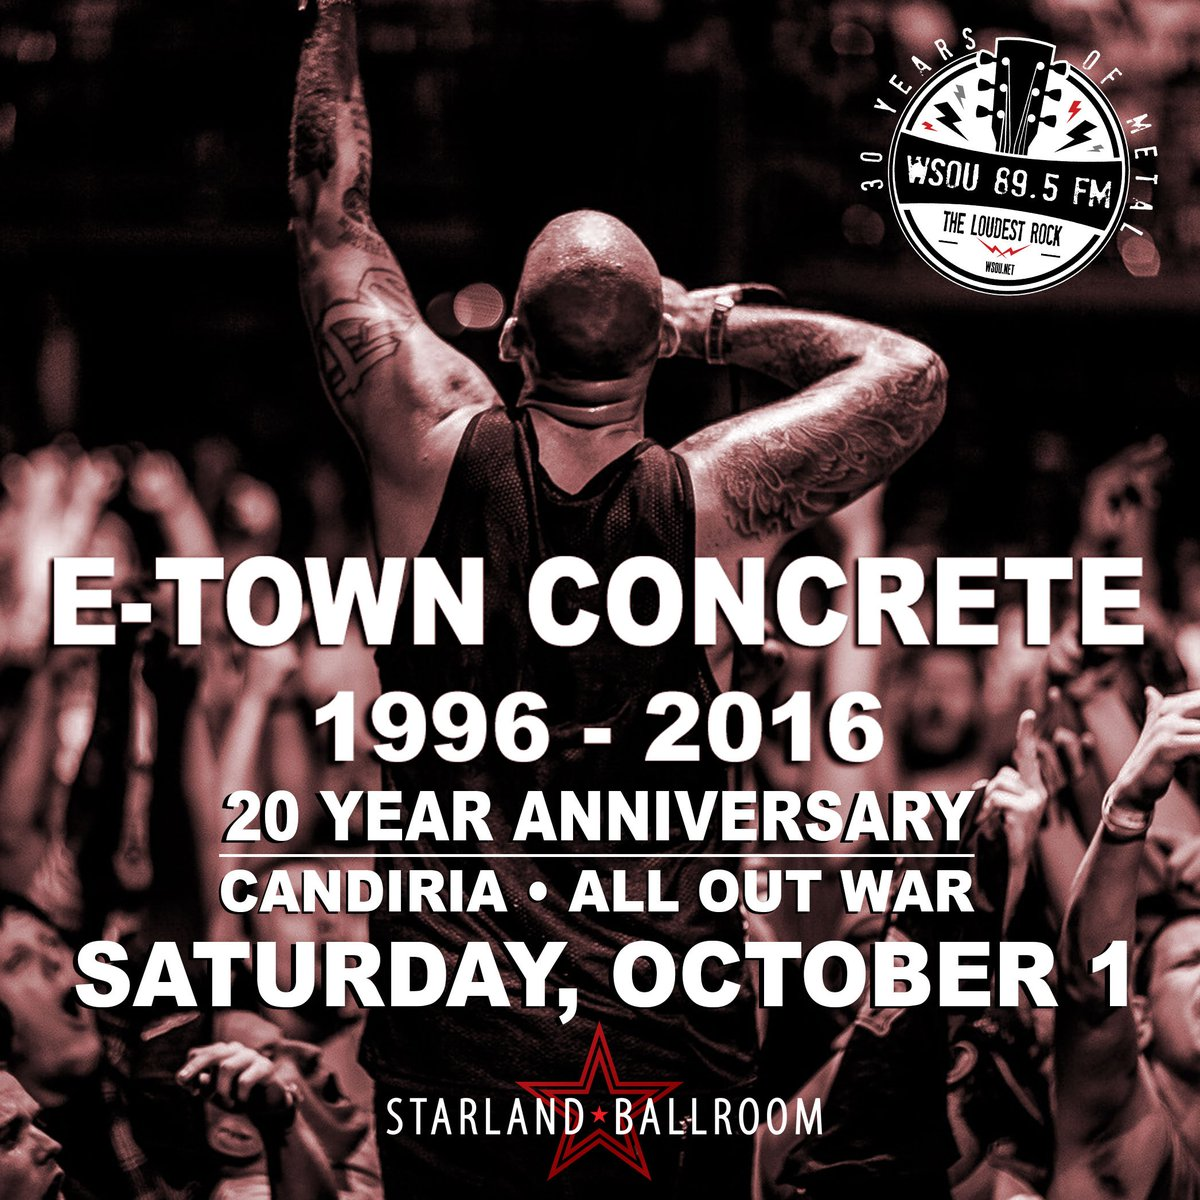 SHOW ALERT! WSOU Presents: @etownconcrete with Candiria at @starlandNJ on Saturday October 1st! Tickets on sale now! https://t.co/PGemuyyCX8